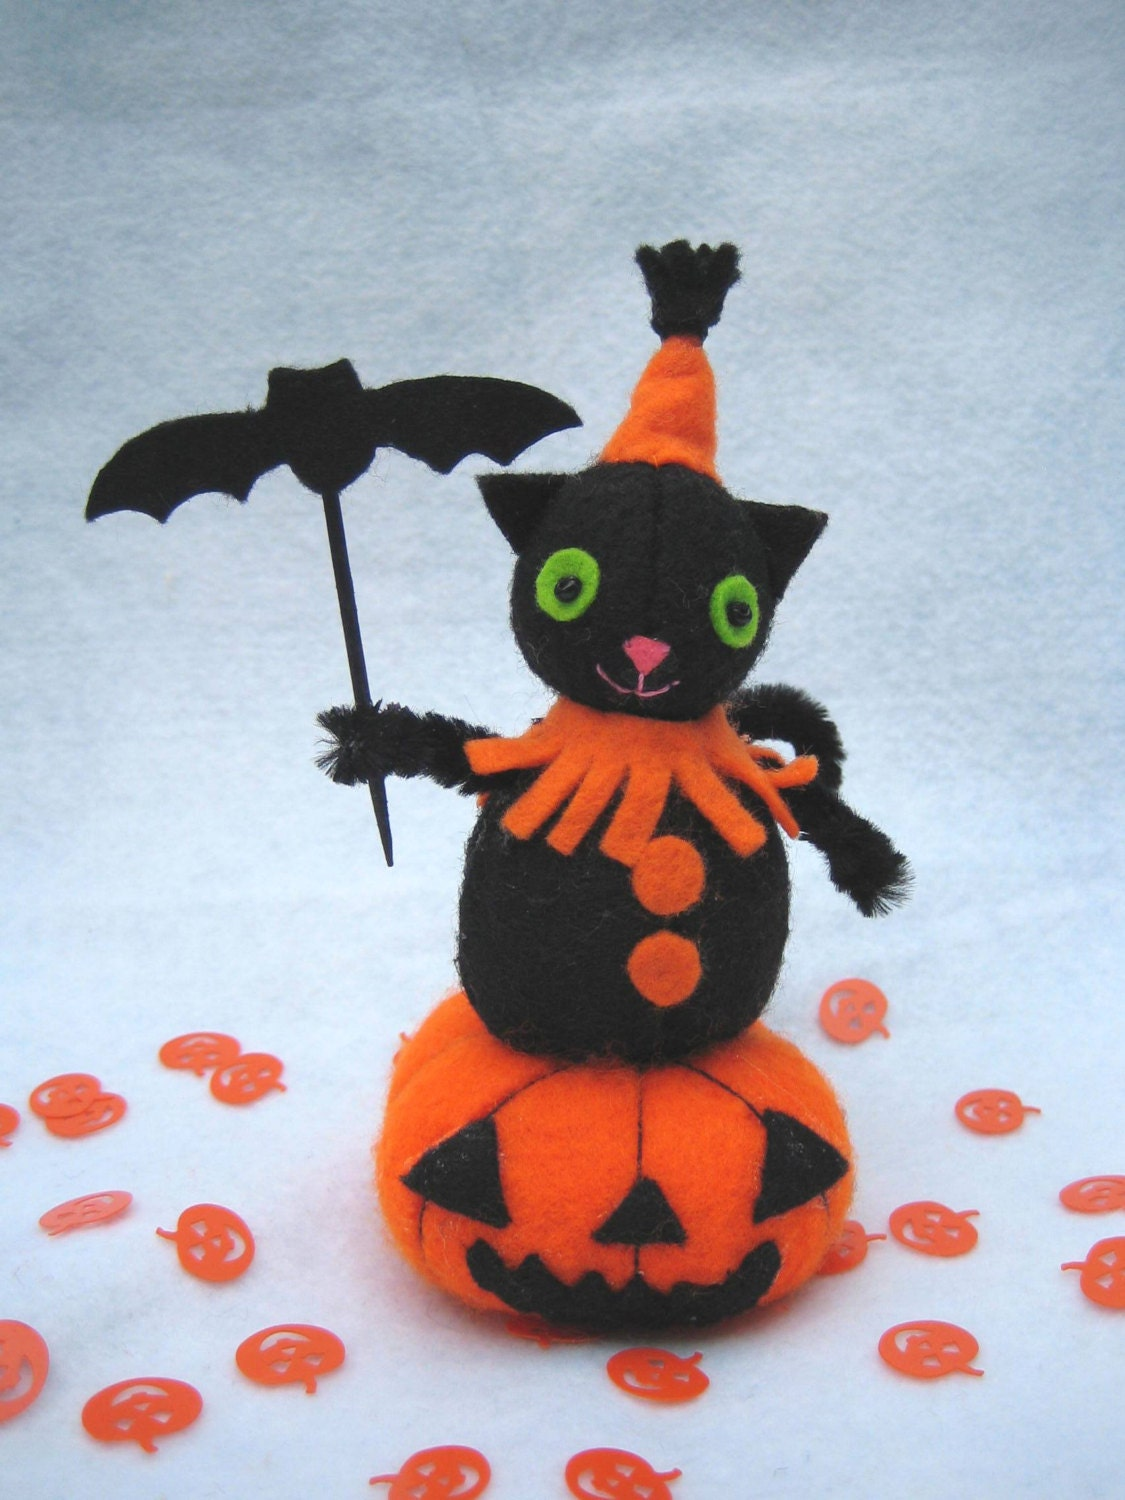 Halloween cat with a bat sitting on a pumpkin, nice halloween decor item, felt ornament, halloween pincushion - RALOOLAND